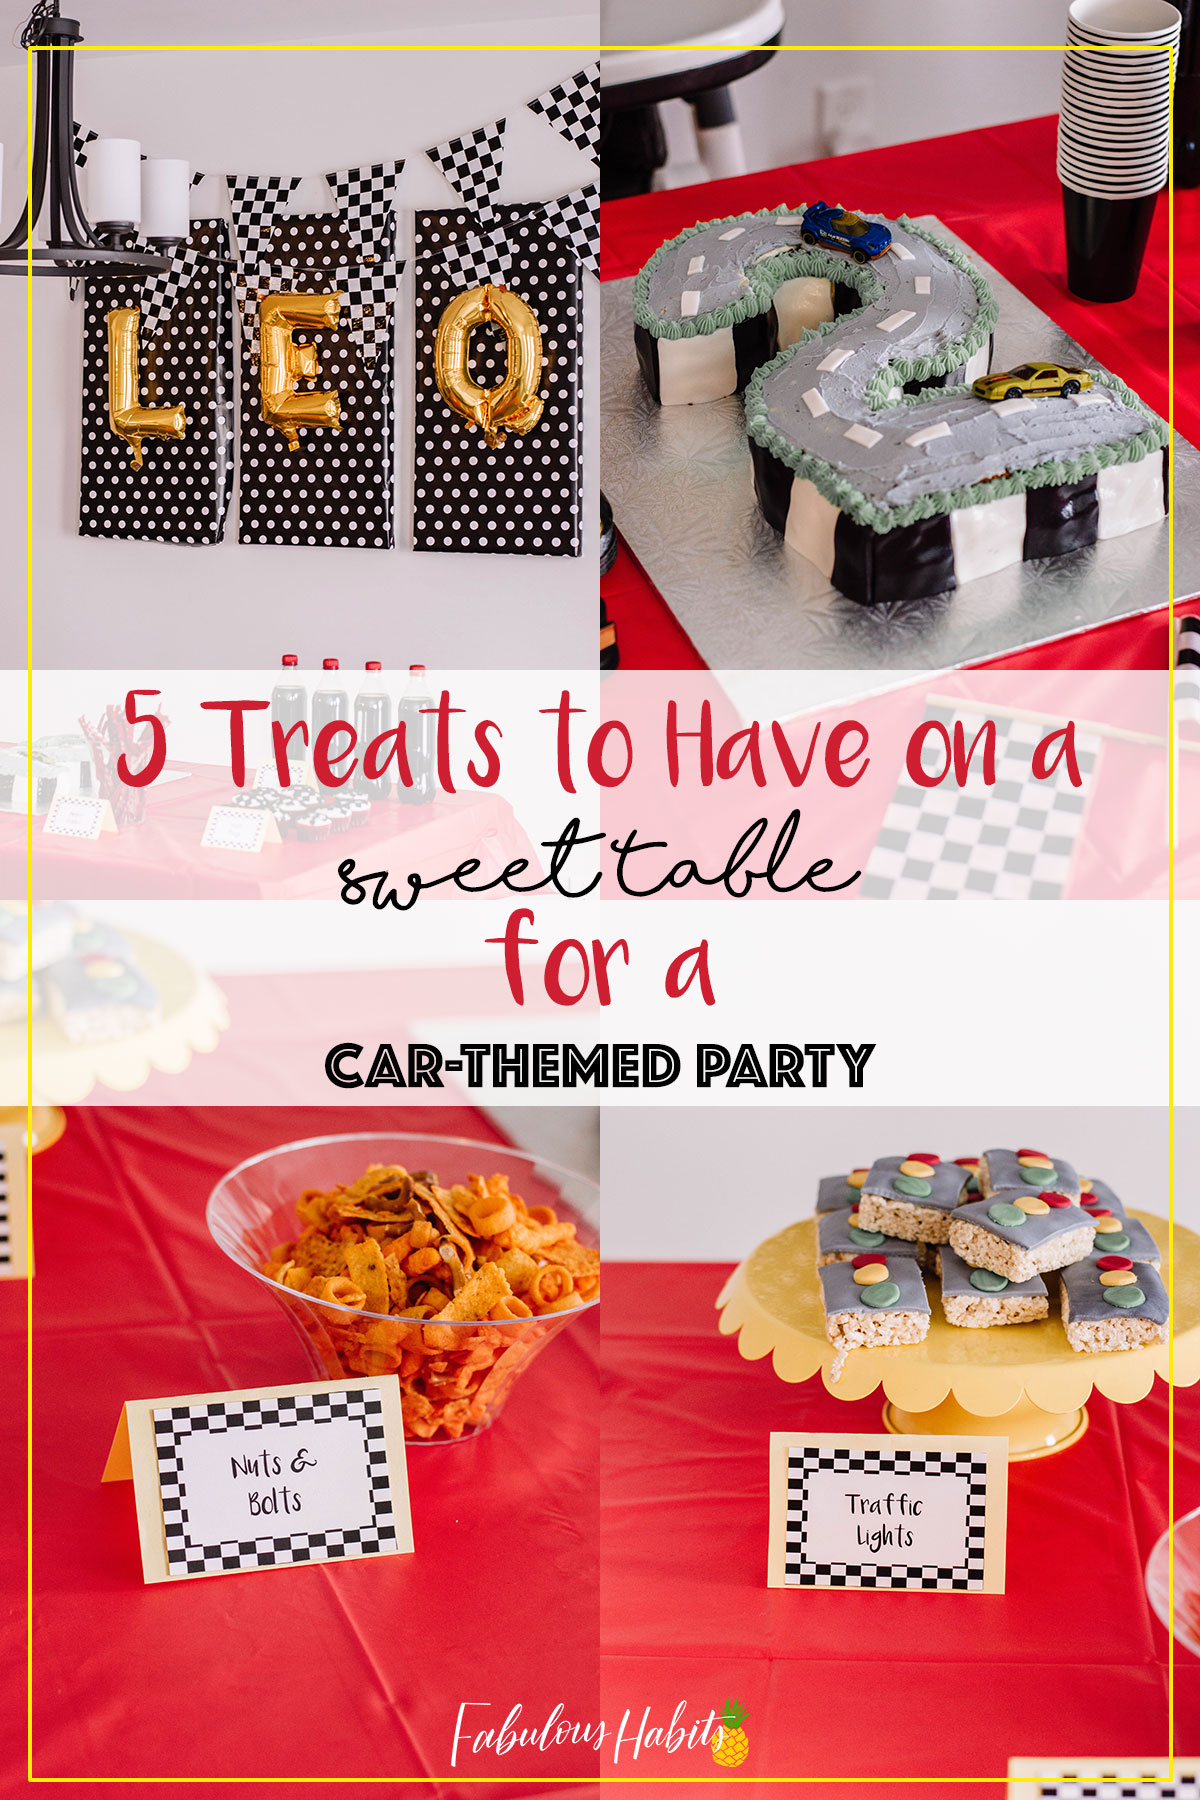 Planning a car-themed birthday party? Here are 5 treats that are must-haves! You'll totally wow your guests and your little one will absolutely love it! Vroom, vroom! Time to get our party-on for your car-themed birthday party! #carthemedbirthdayparty #cartheme #birthdayparty #boybirthdayparty